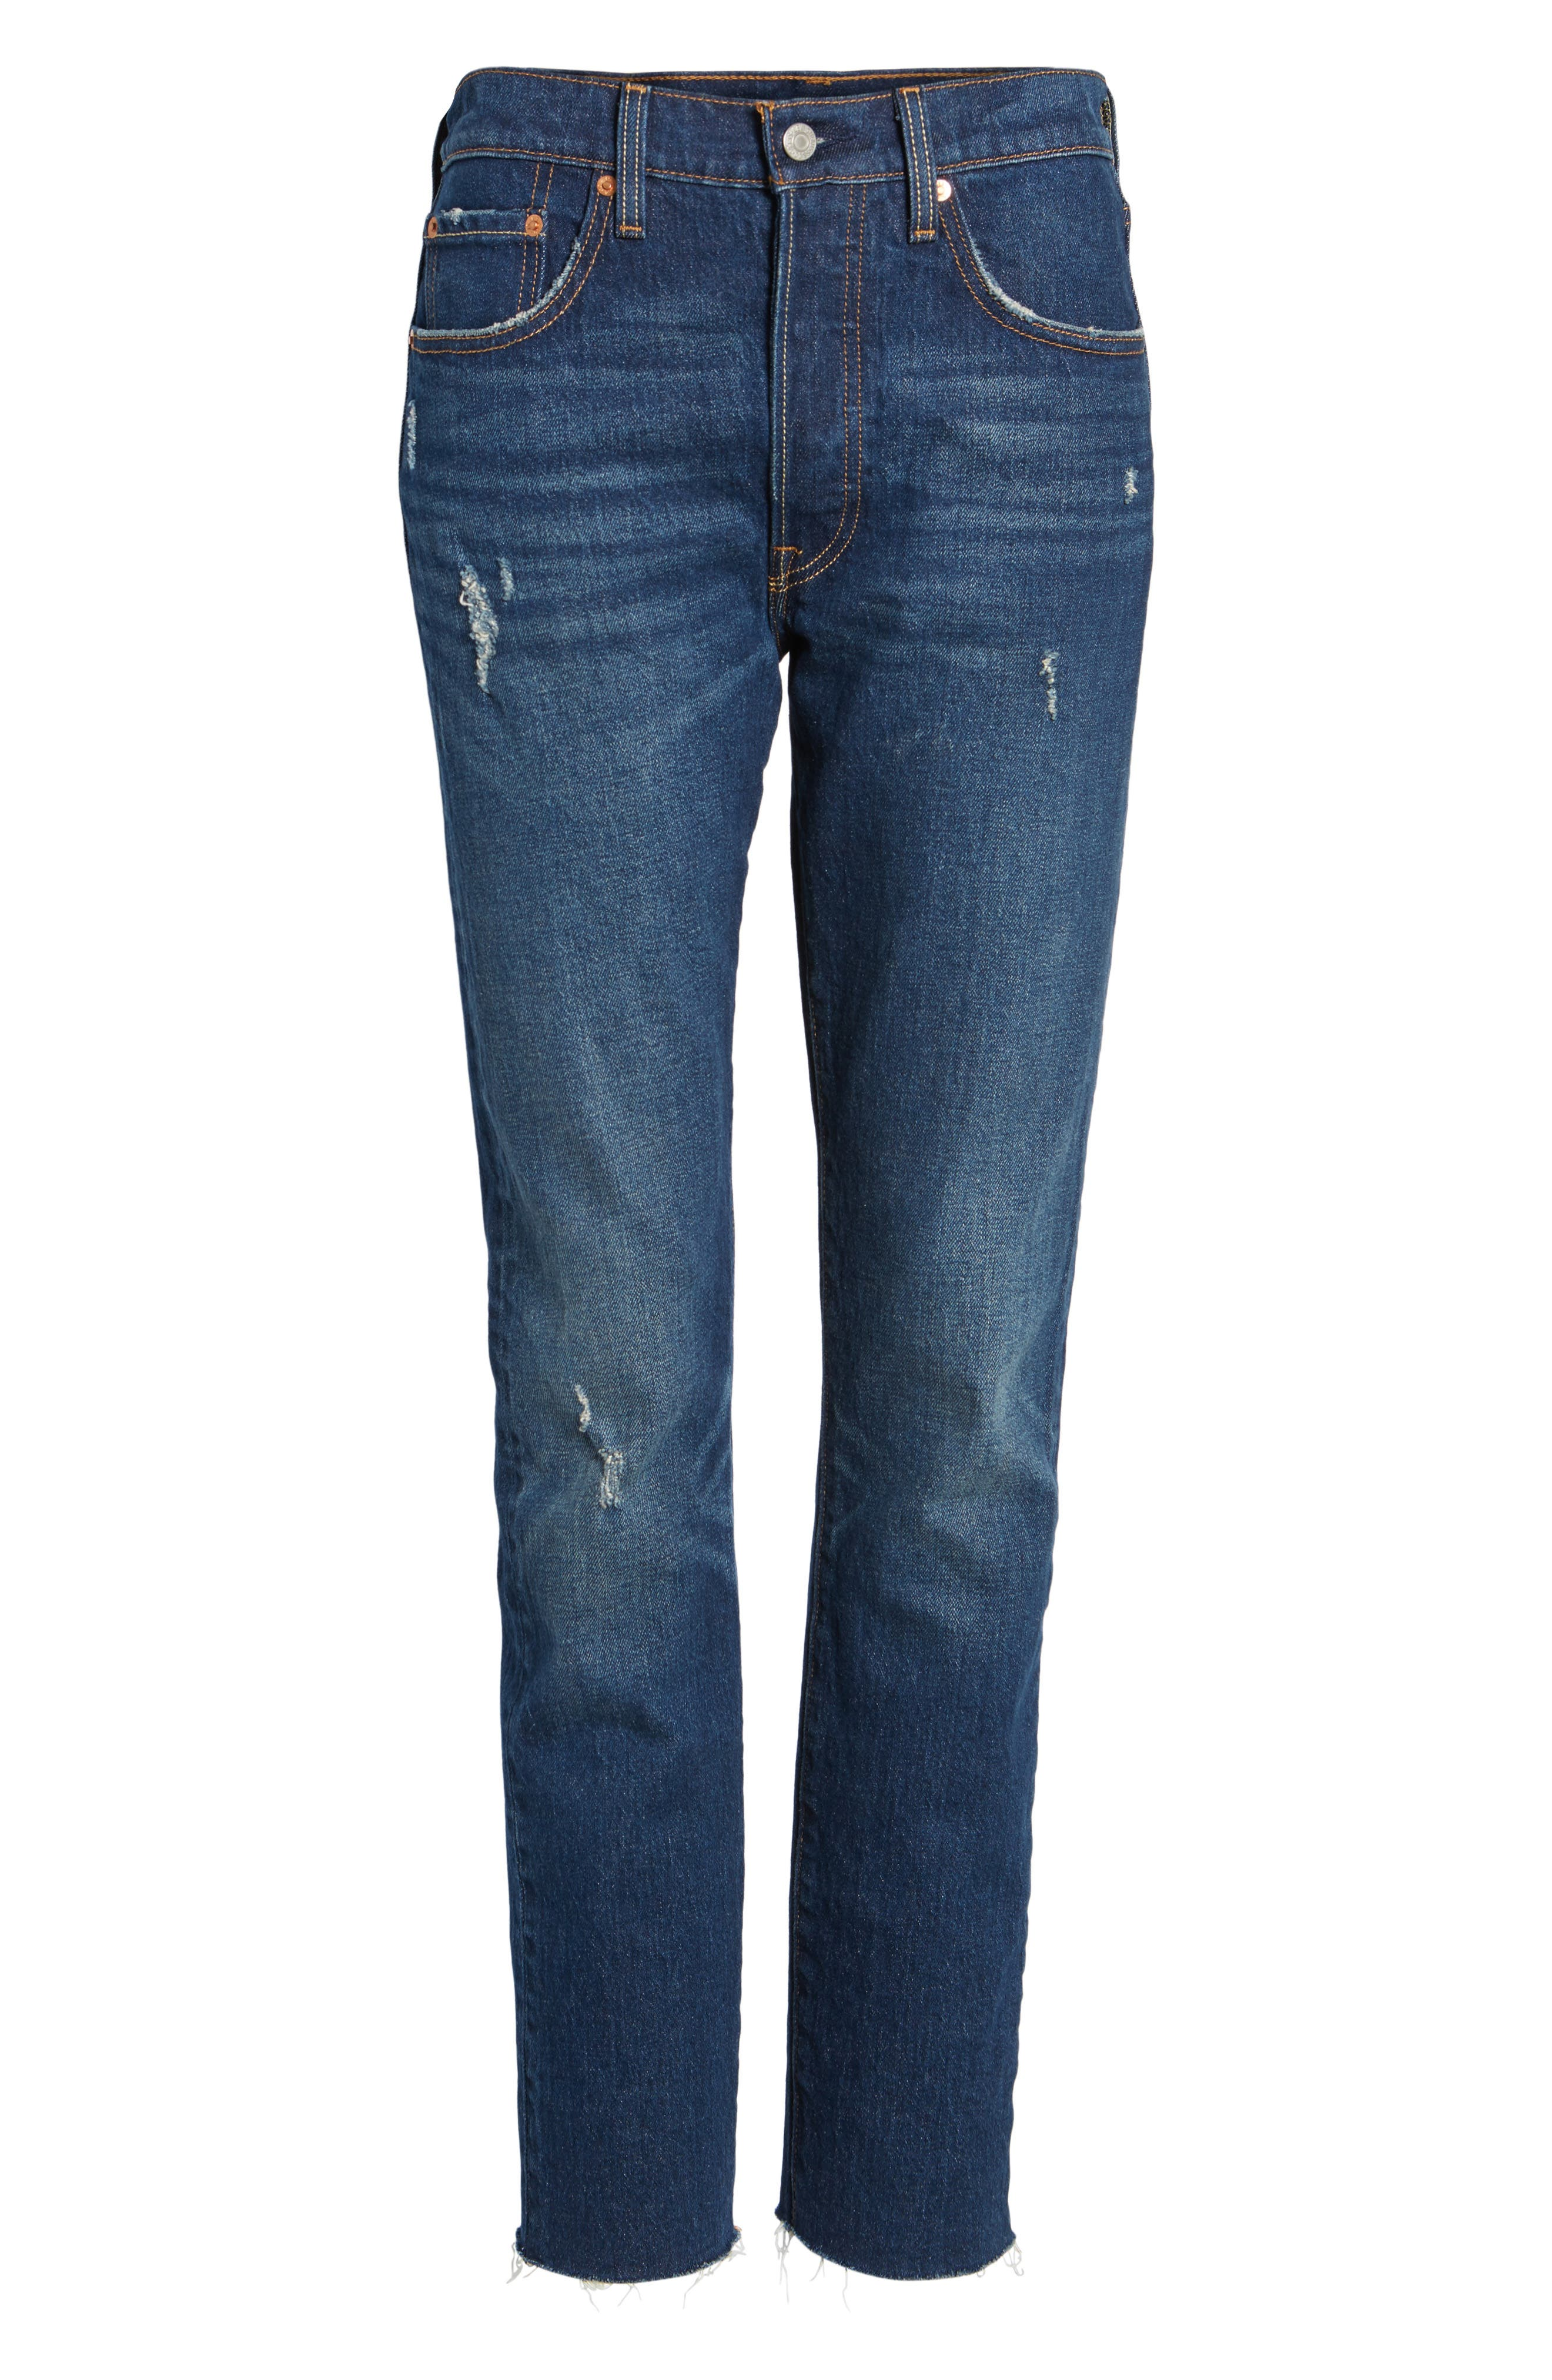 Levis<sup>®</sup> 501 Raw Hem Skinny Jeans,                             Alternate thumbnail 6, color,